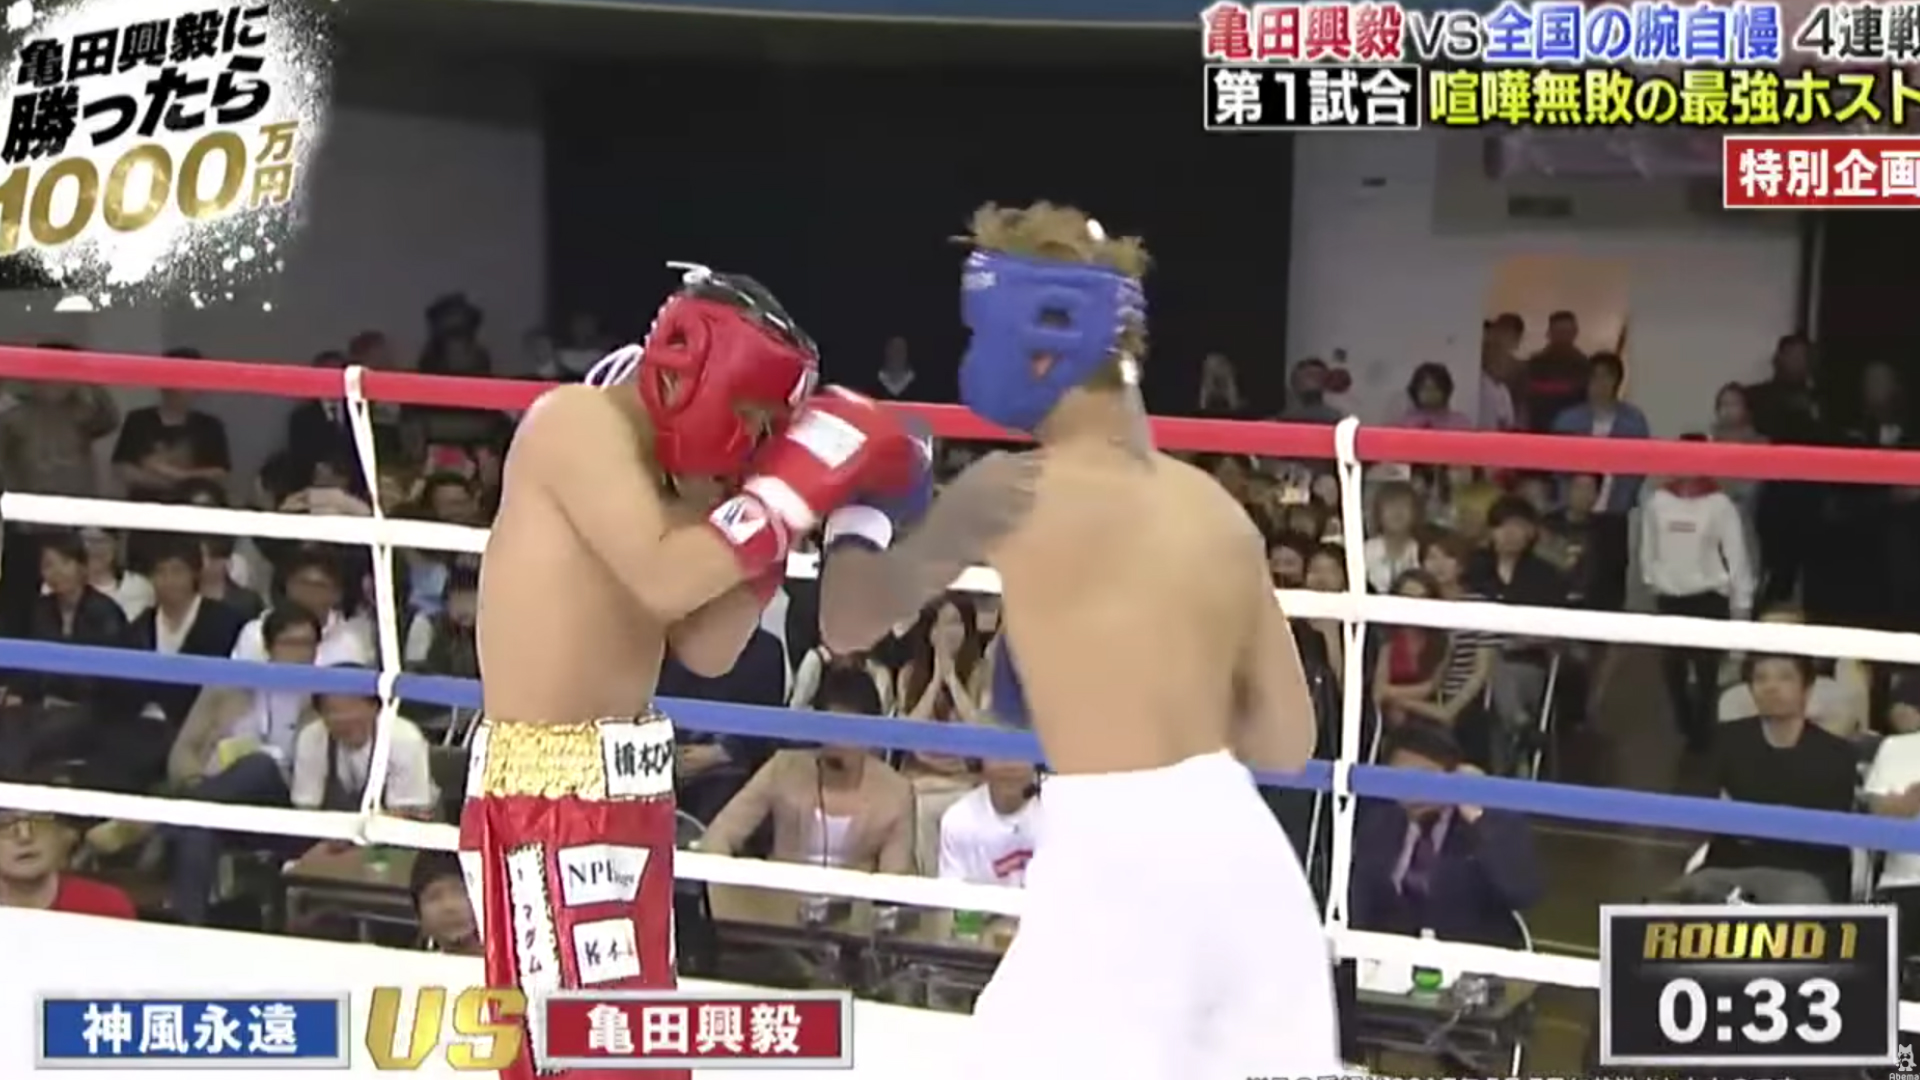 Japanese boxing match watched by 14 million people